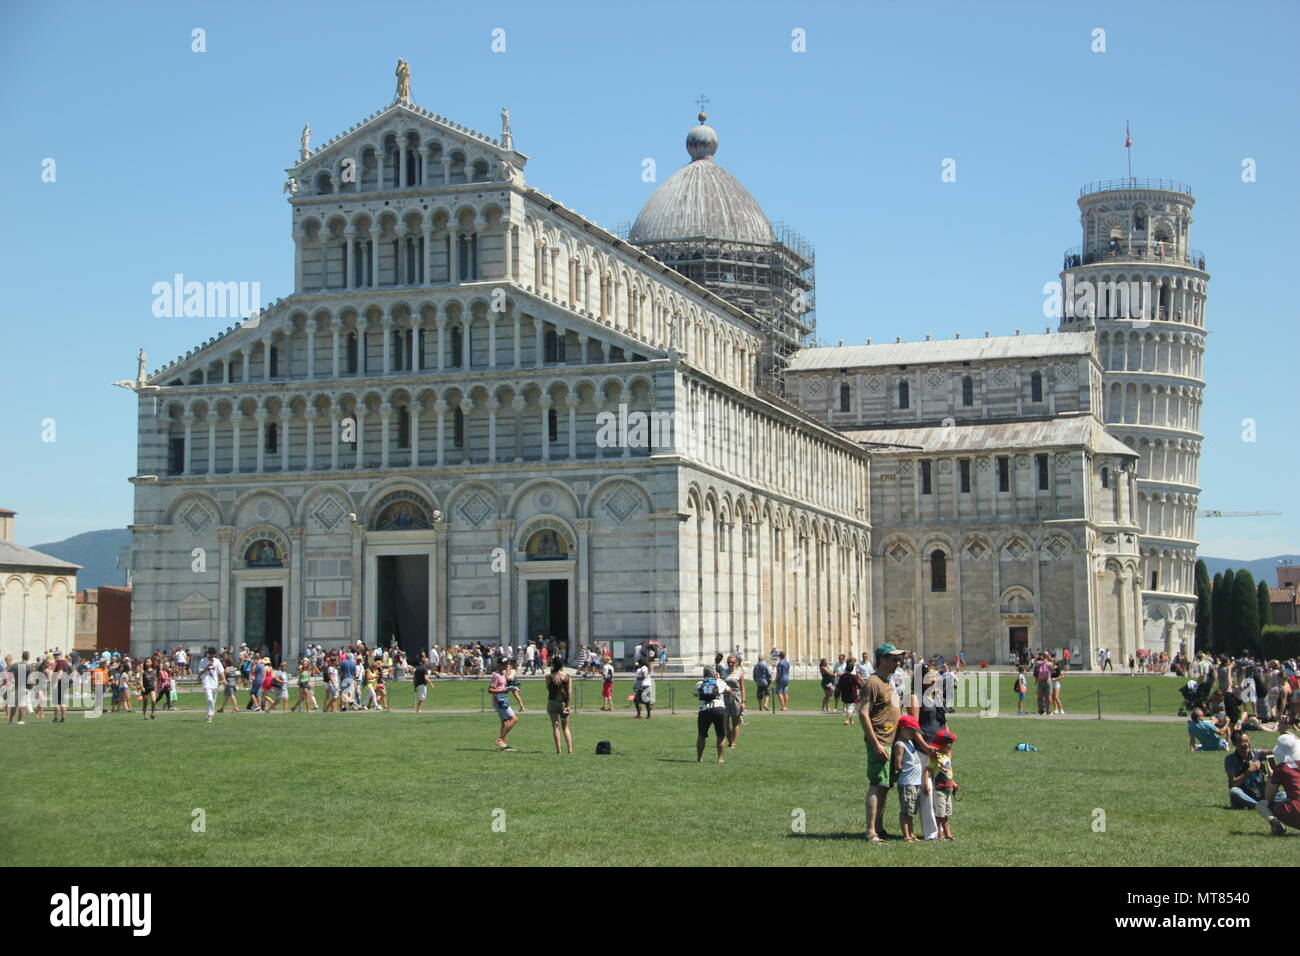 The Cathedral of Pisa in The Square of Miracles, Pisa, Italy - Stock Image